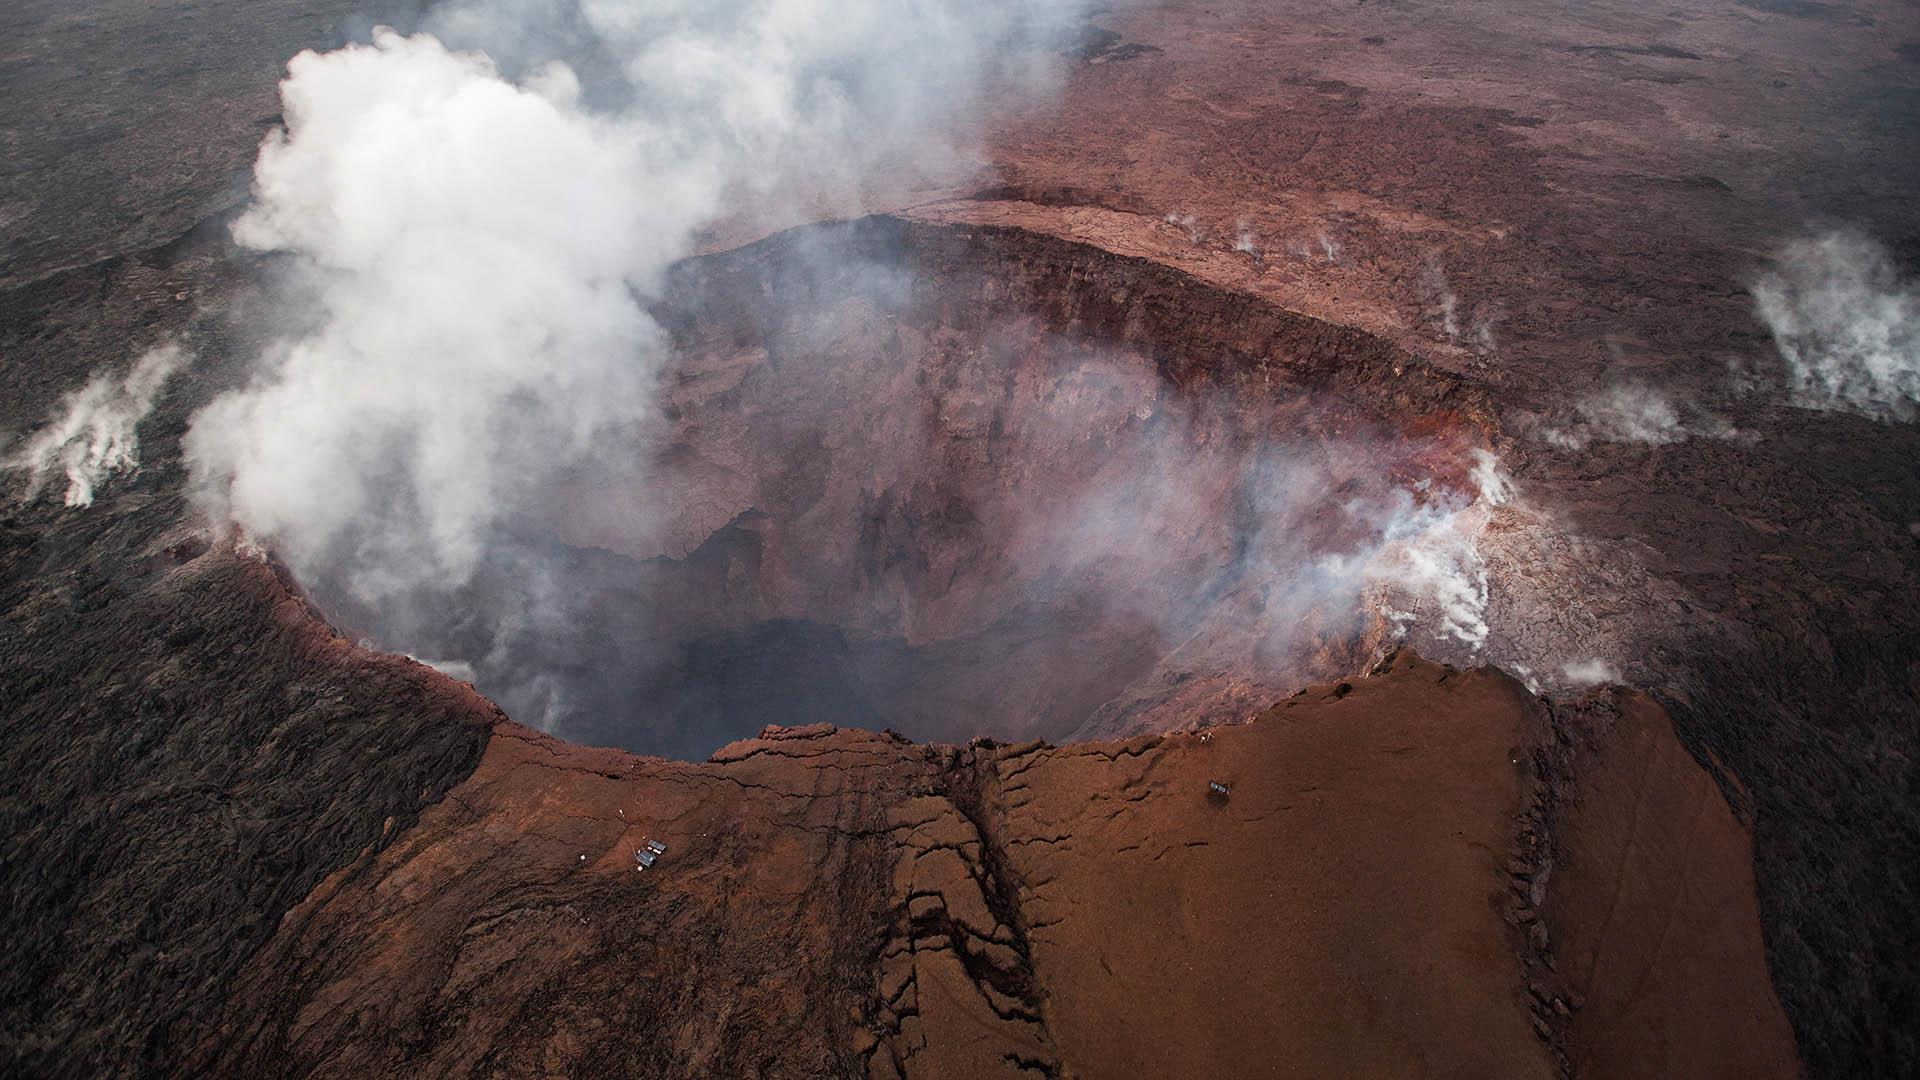 Boulders the size of microwave ovens are hurled from Hawaiian volcano